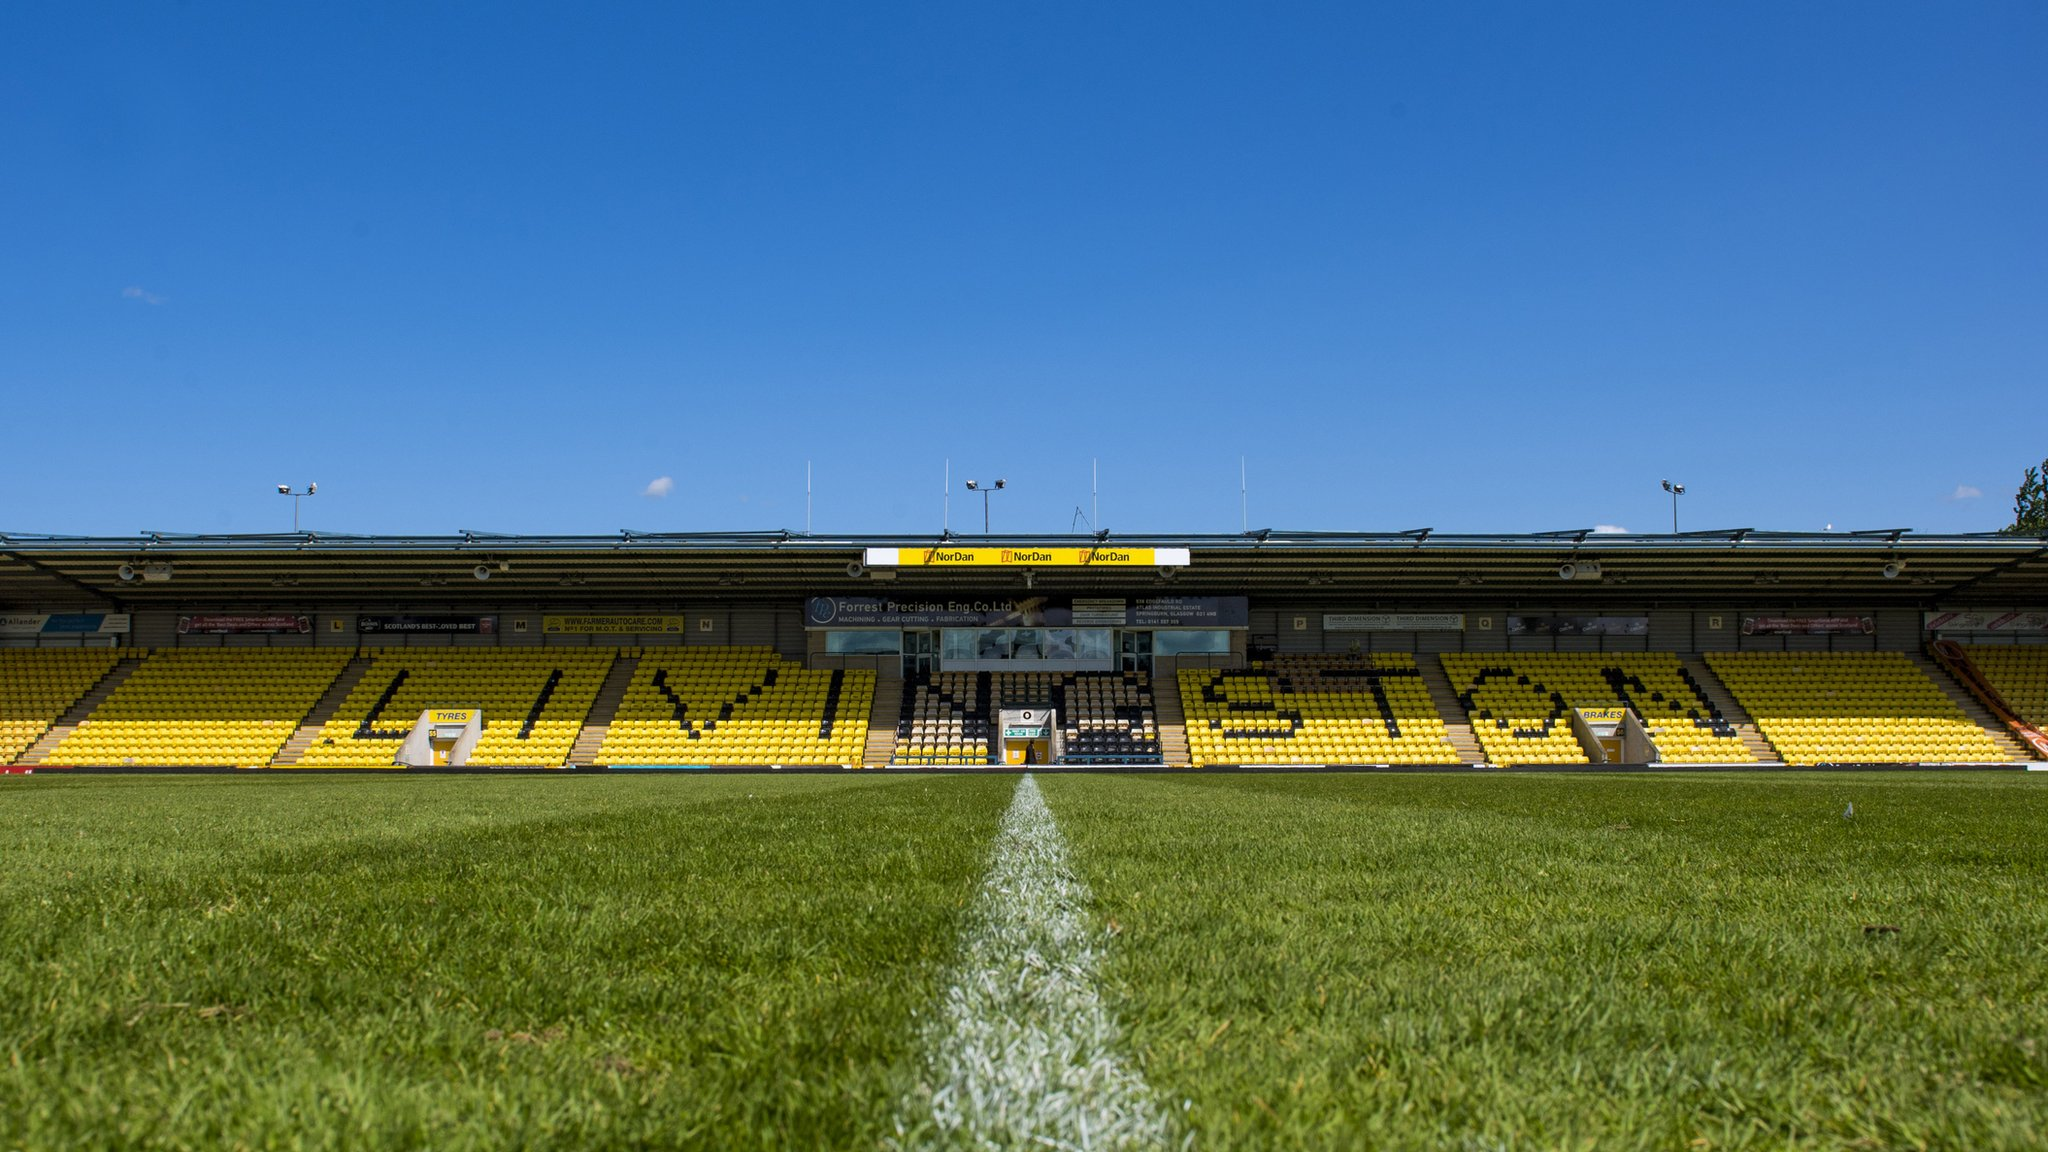 Six promotions, two relegations, one demotion & a League Cup - the Livi story